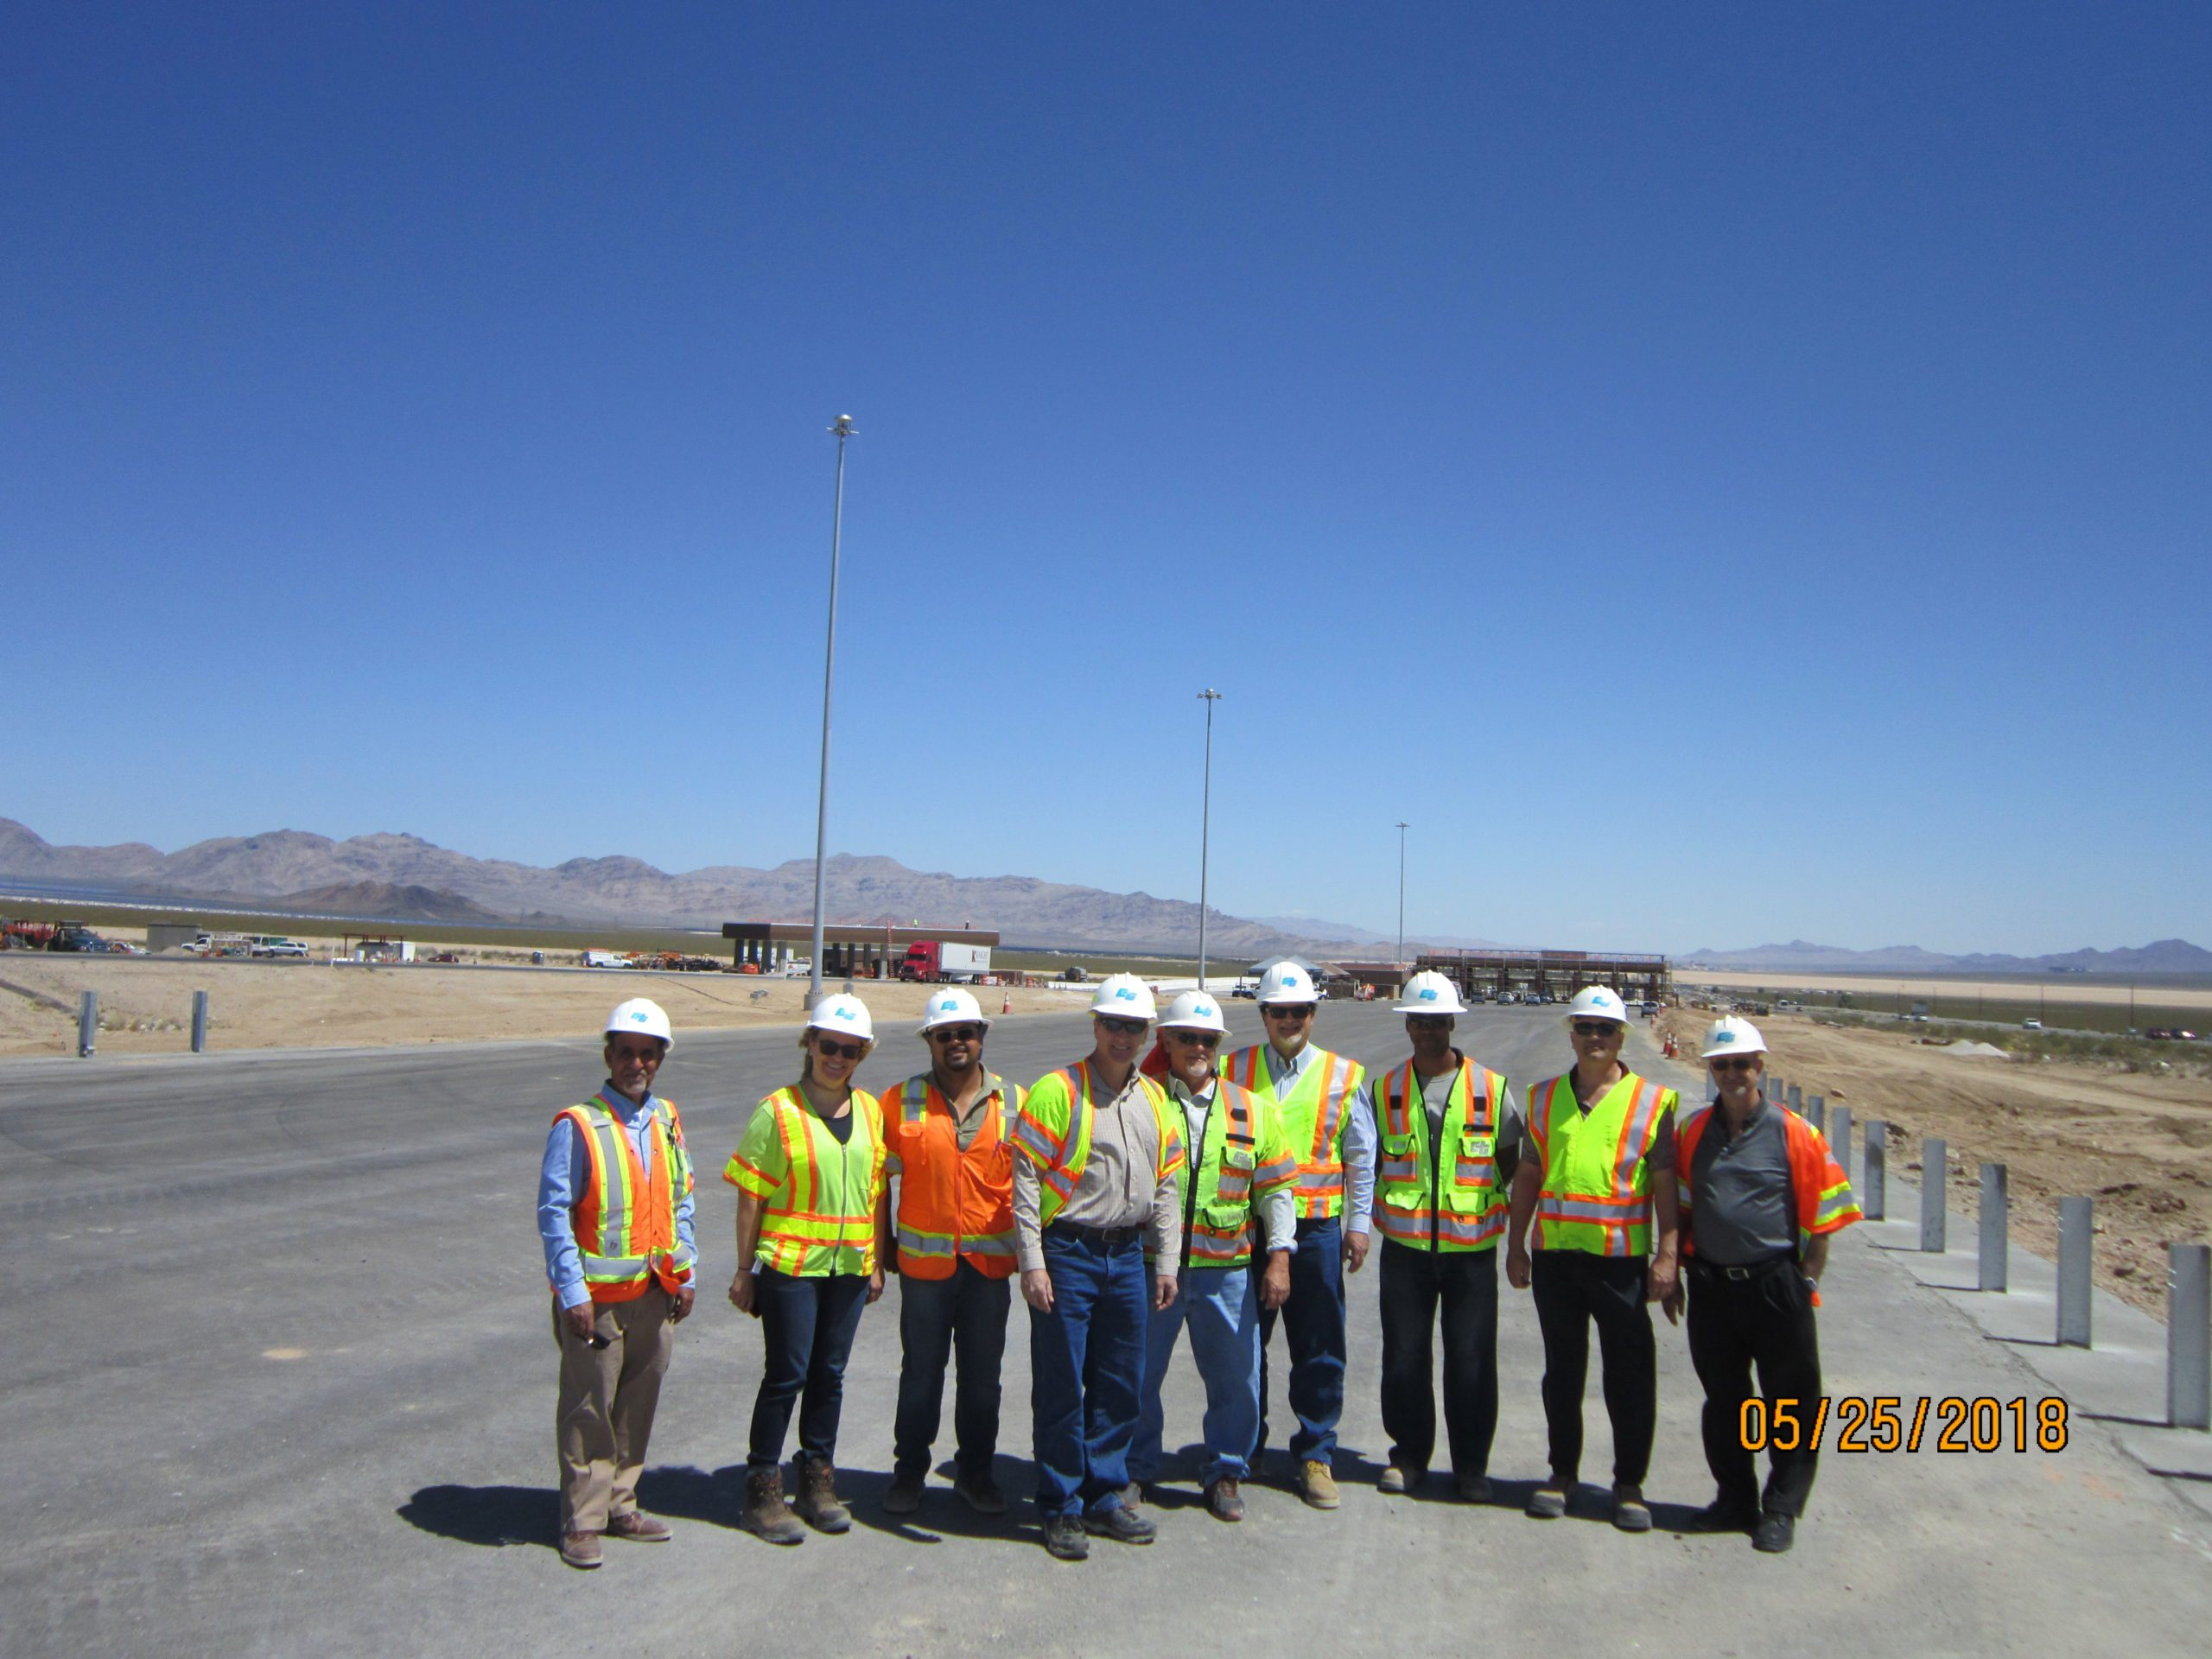 The GLA team stands for a group photo with Caltrans construction workers